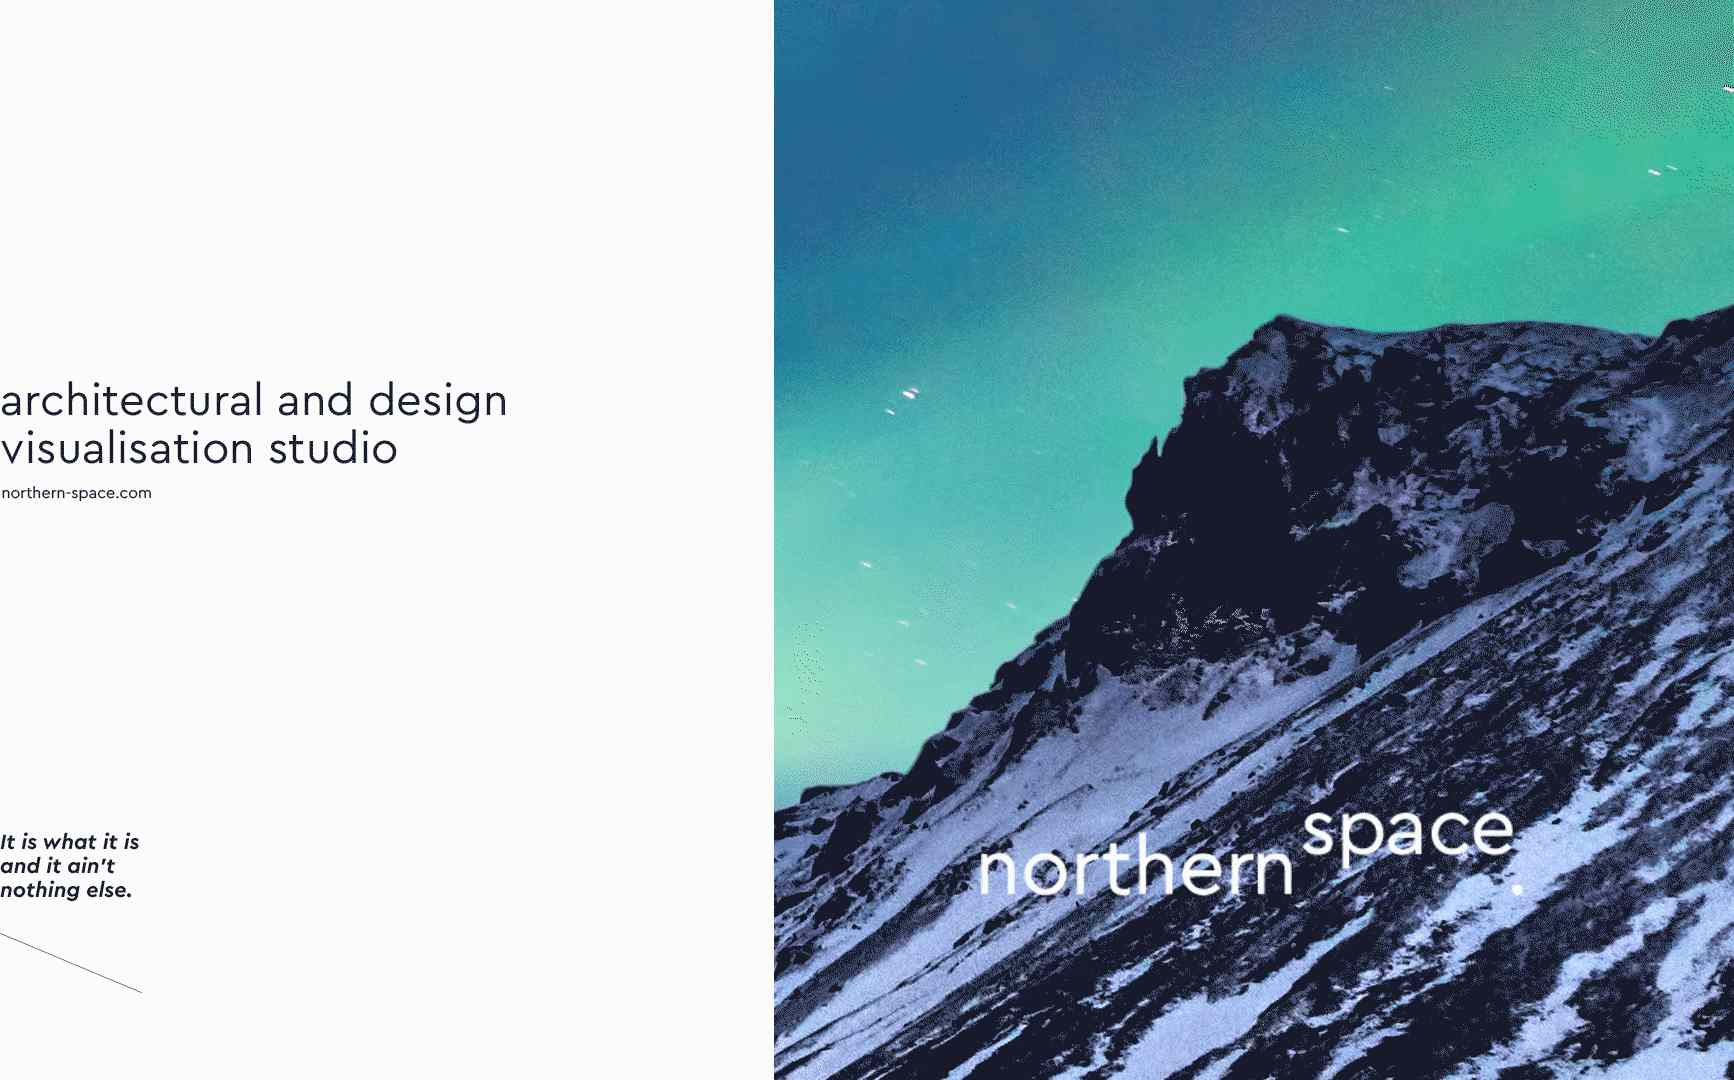 Brand Identity and the Website for Northern Space Designed by Voila Studio